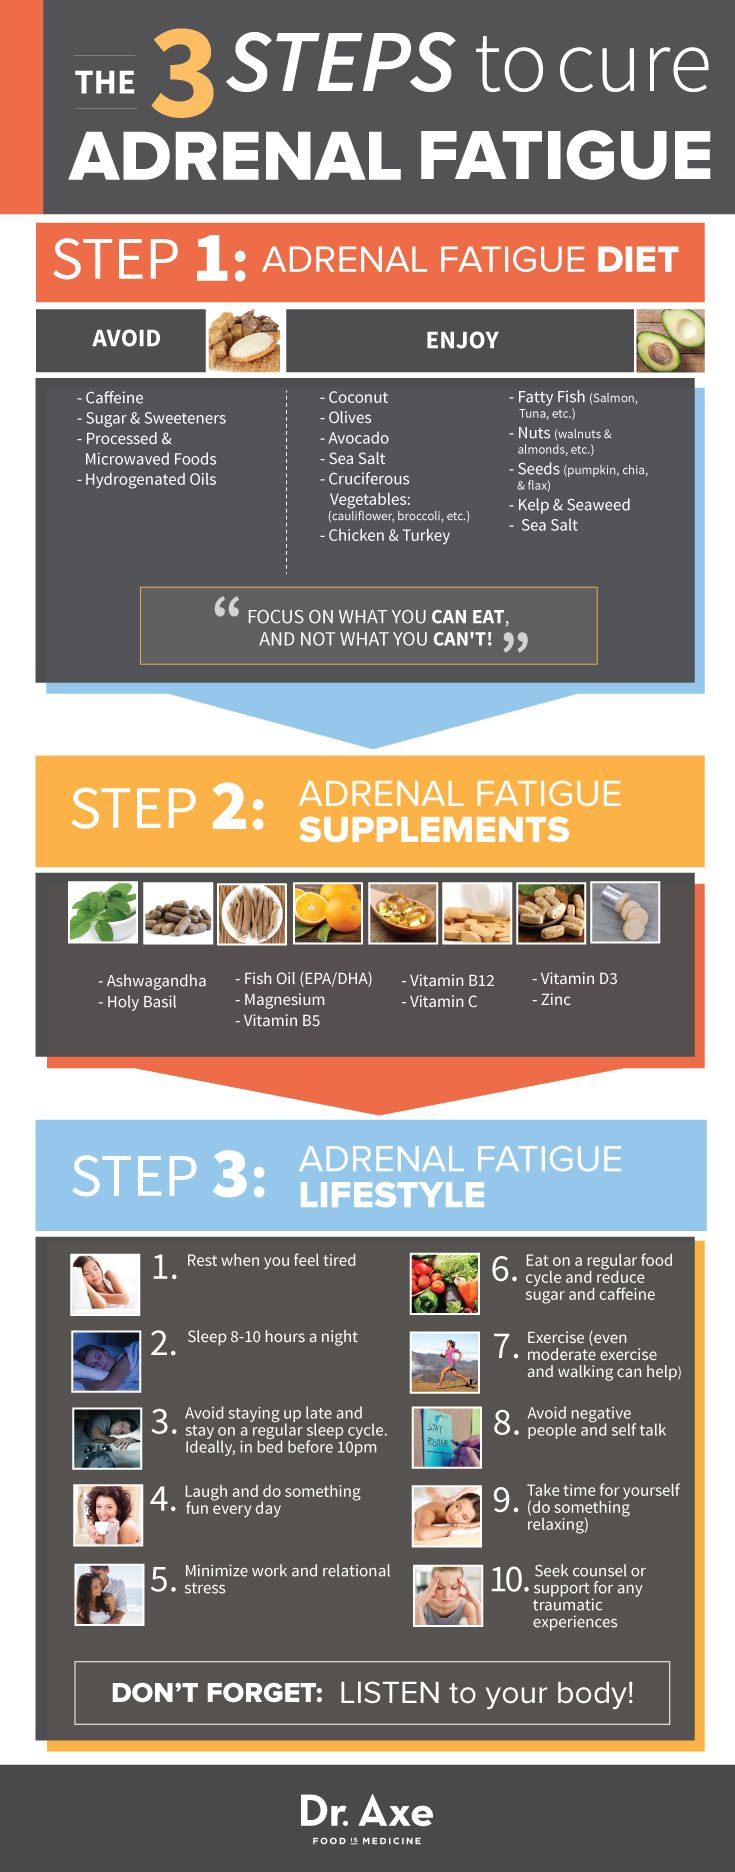 496 best health images on pinterest healthy living home 3 step adrenal cure info graphic chart nvjuhfo Choice Image